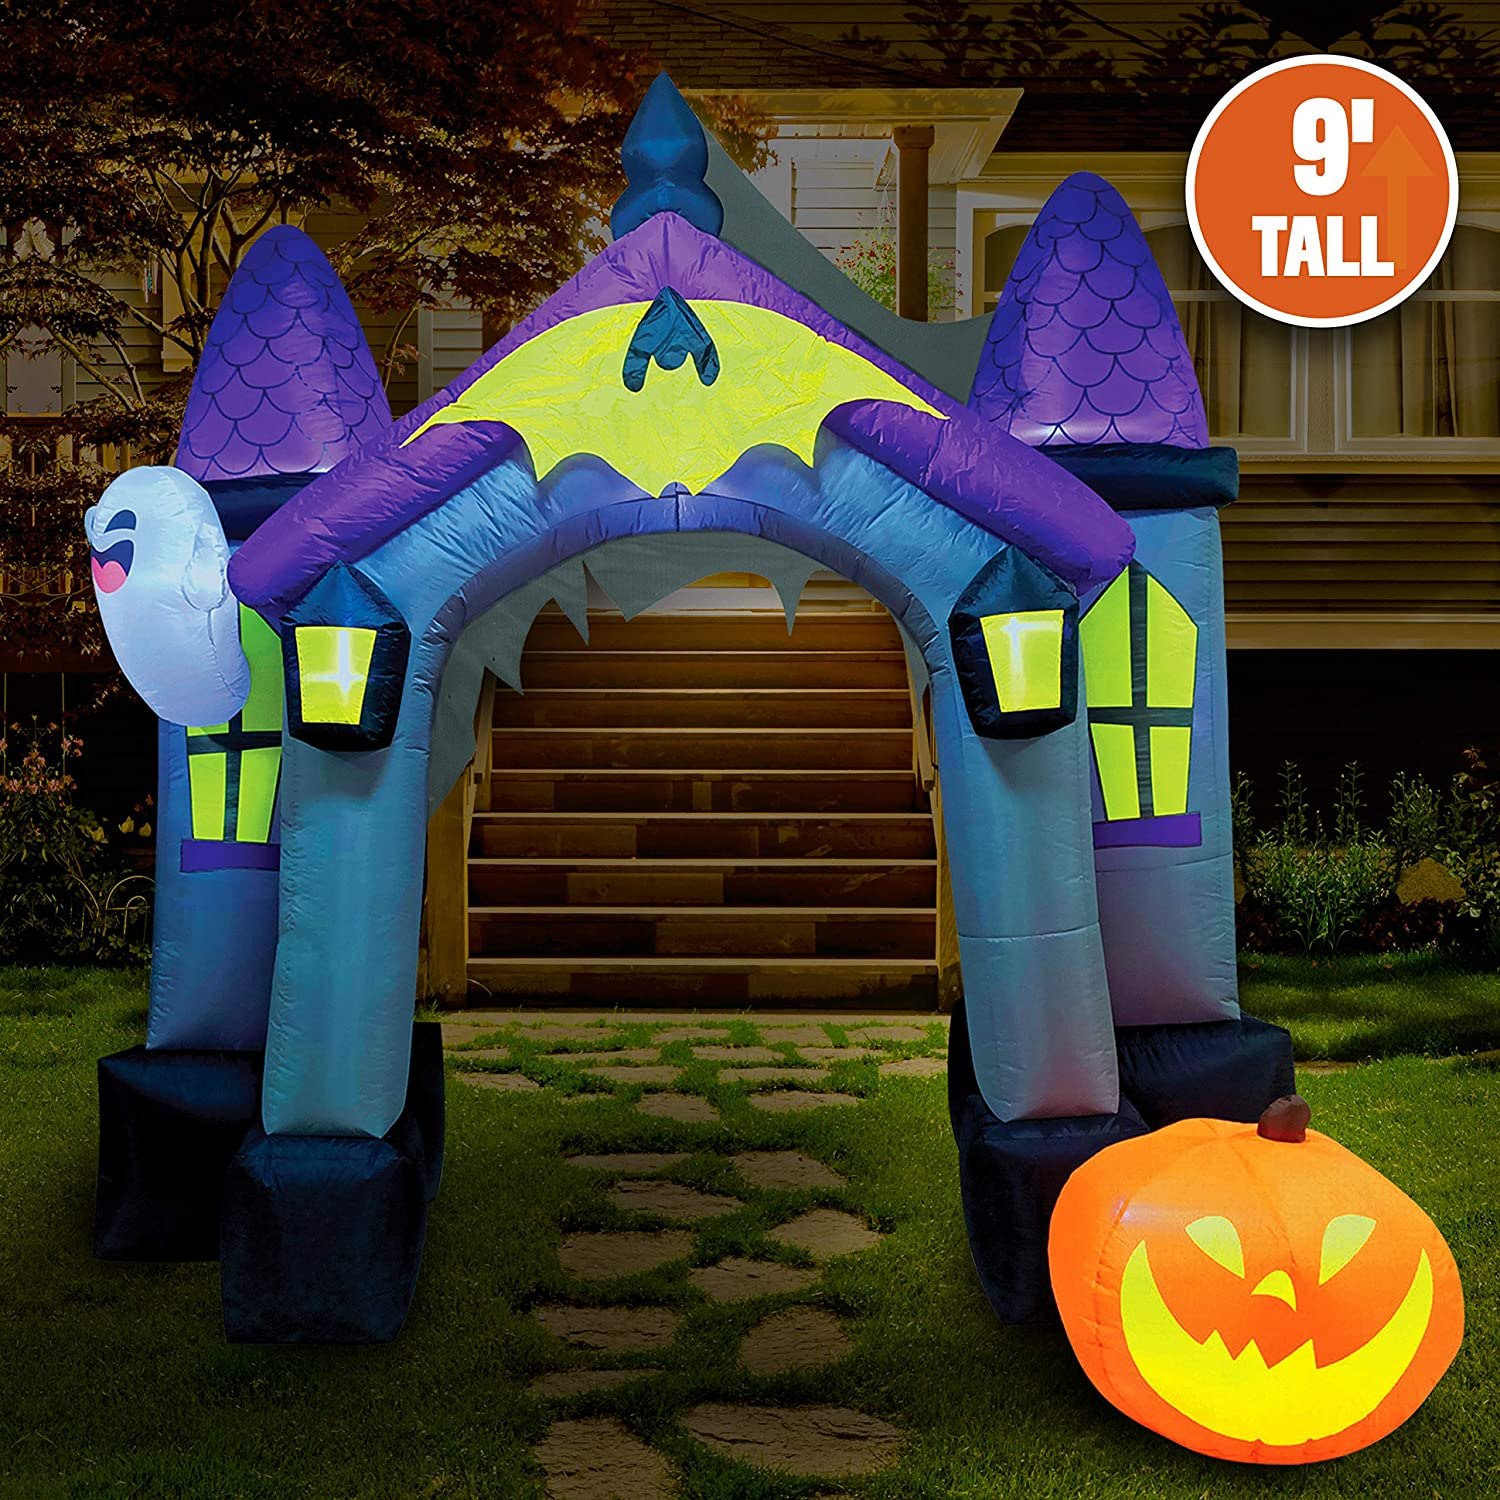 Lawn D/écor Decorations Garden Yard Joiedomi 11 FT Tall with Gift Boxes Archway with Build-in LEDs Blow Up Inflatables for Christmas Party Indoor Outdoor